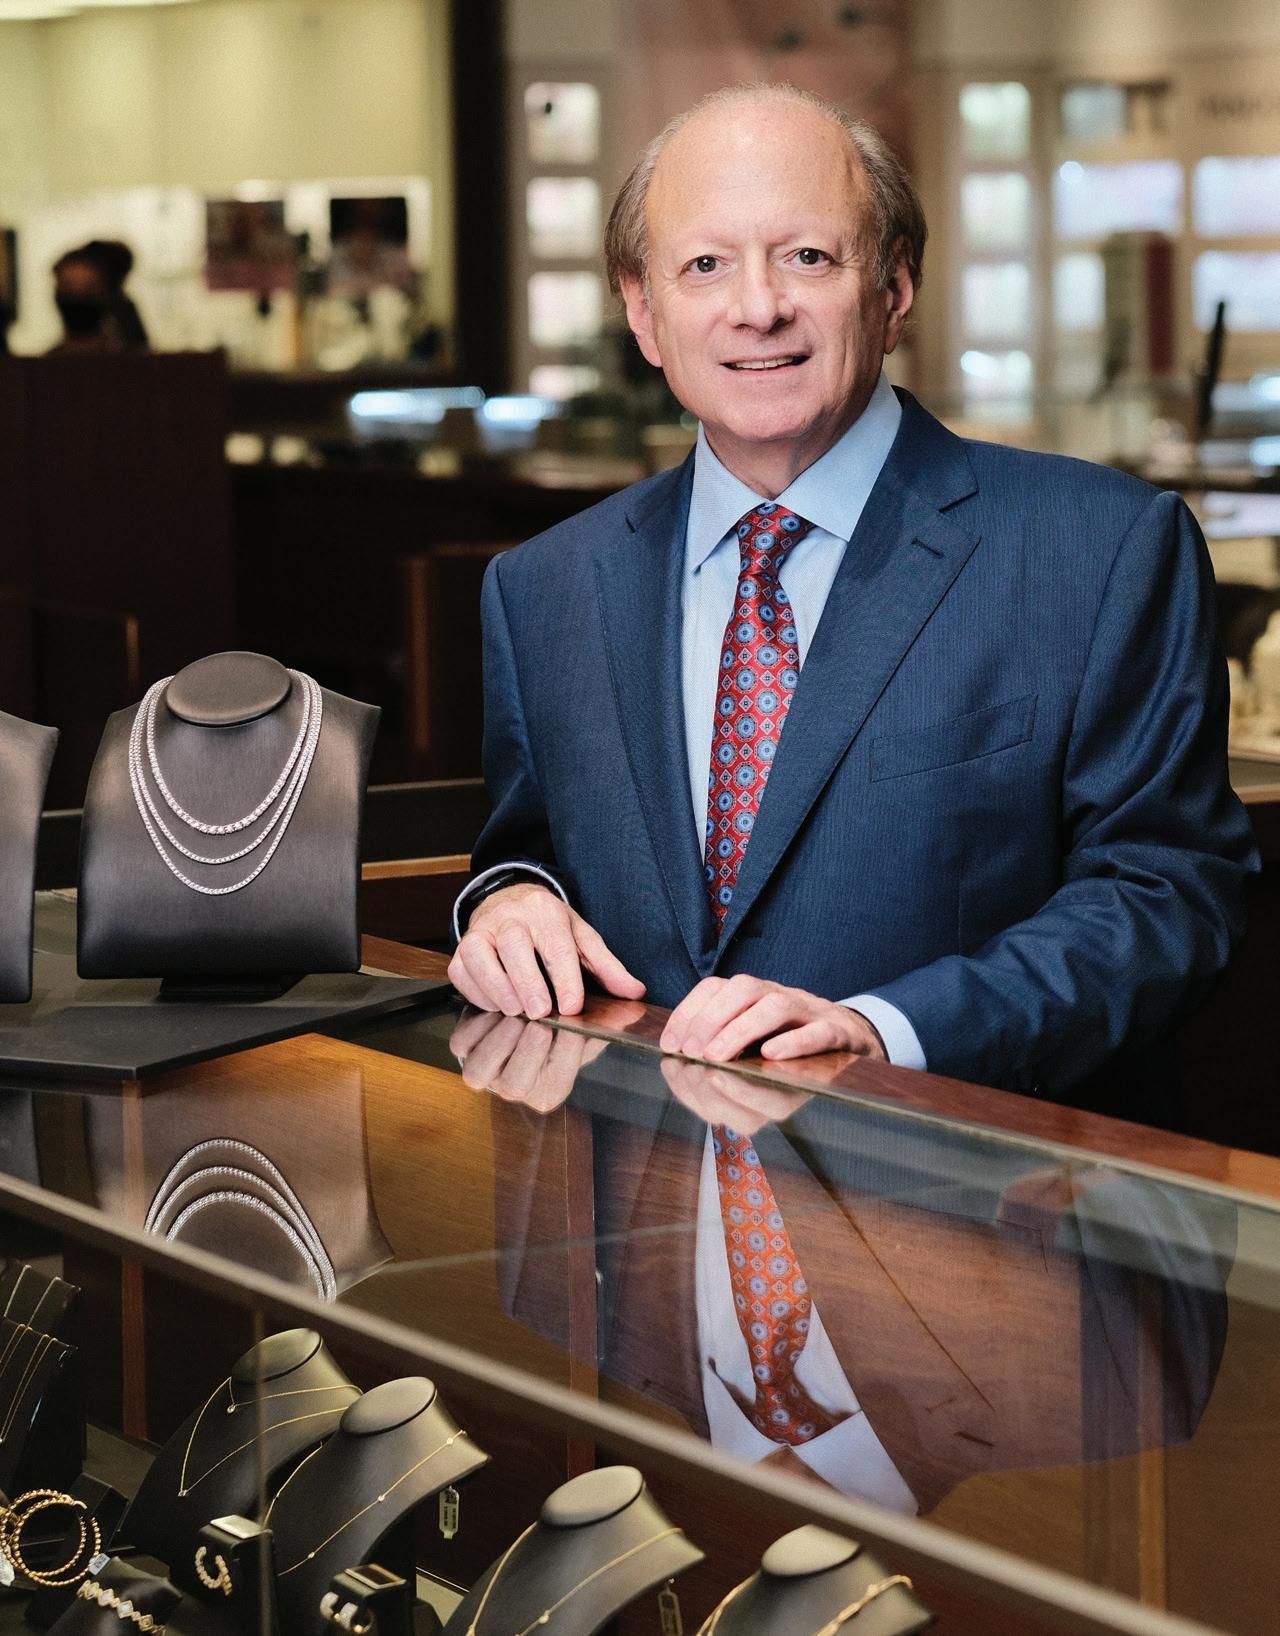 Page 22 of IN PROFILE: REEDS JEWELERS